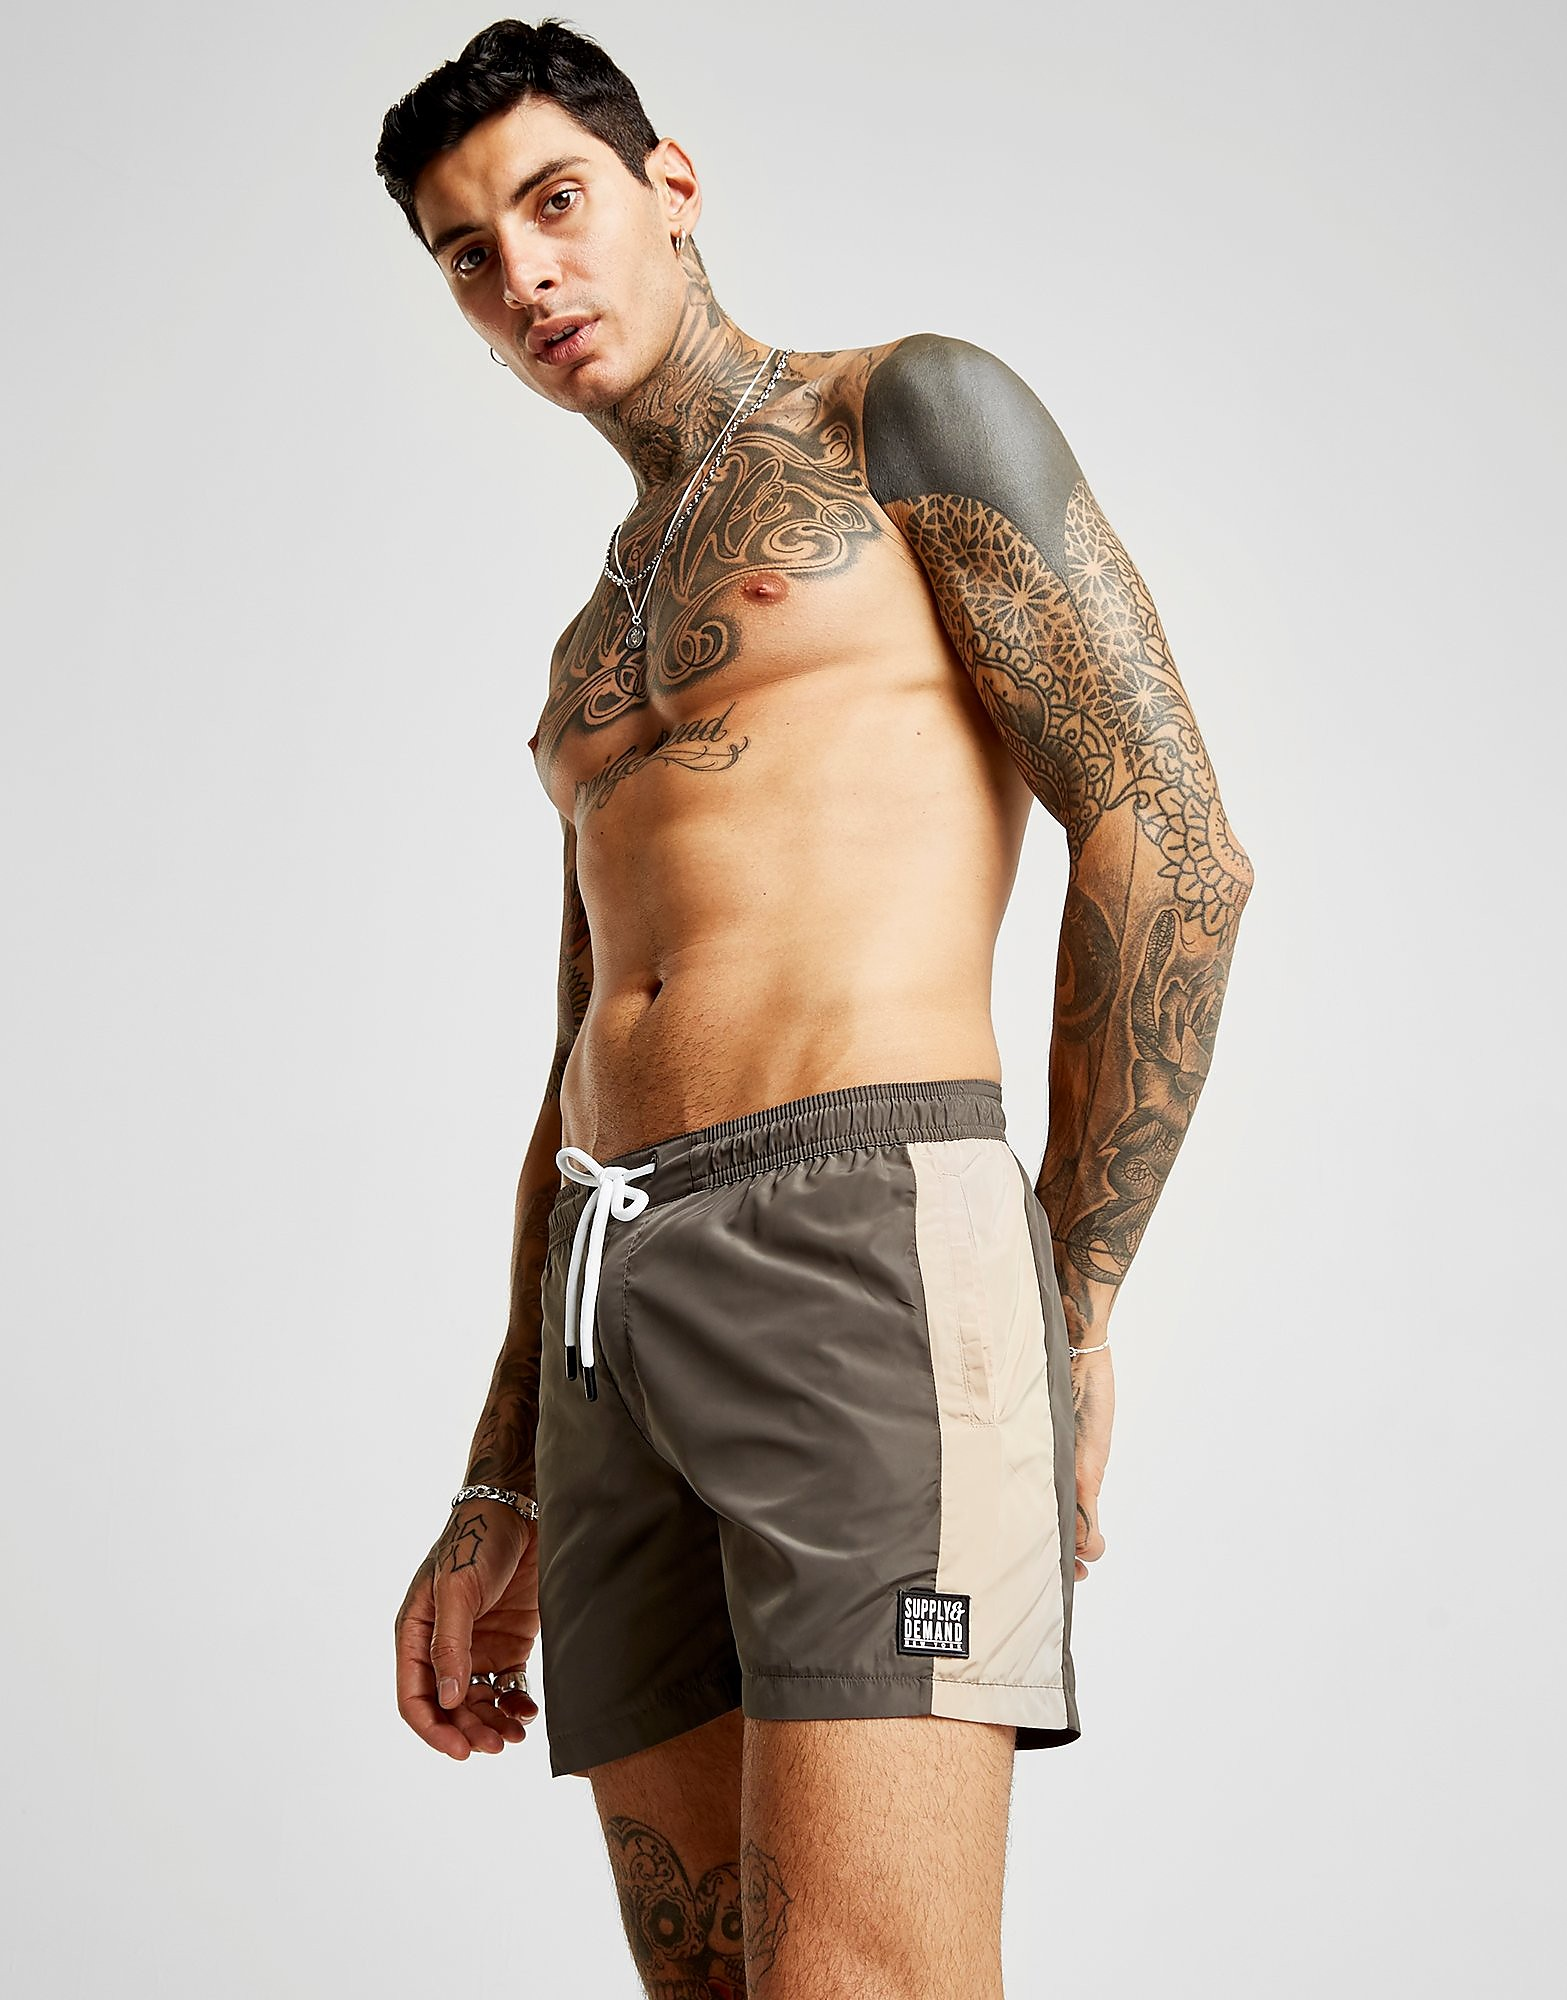 Supply & Demand Workout Swim Shorts - Only at JD, Khaki/Brown